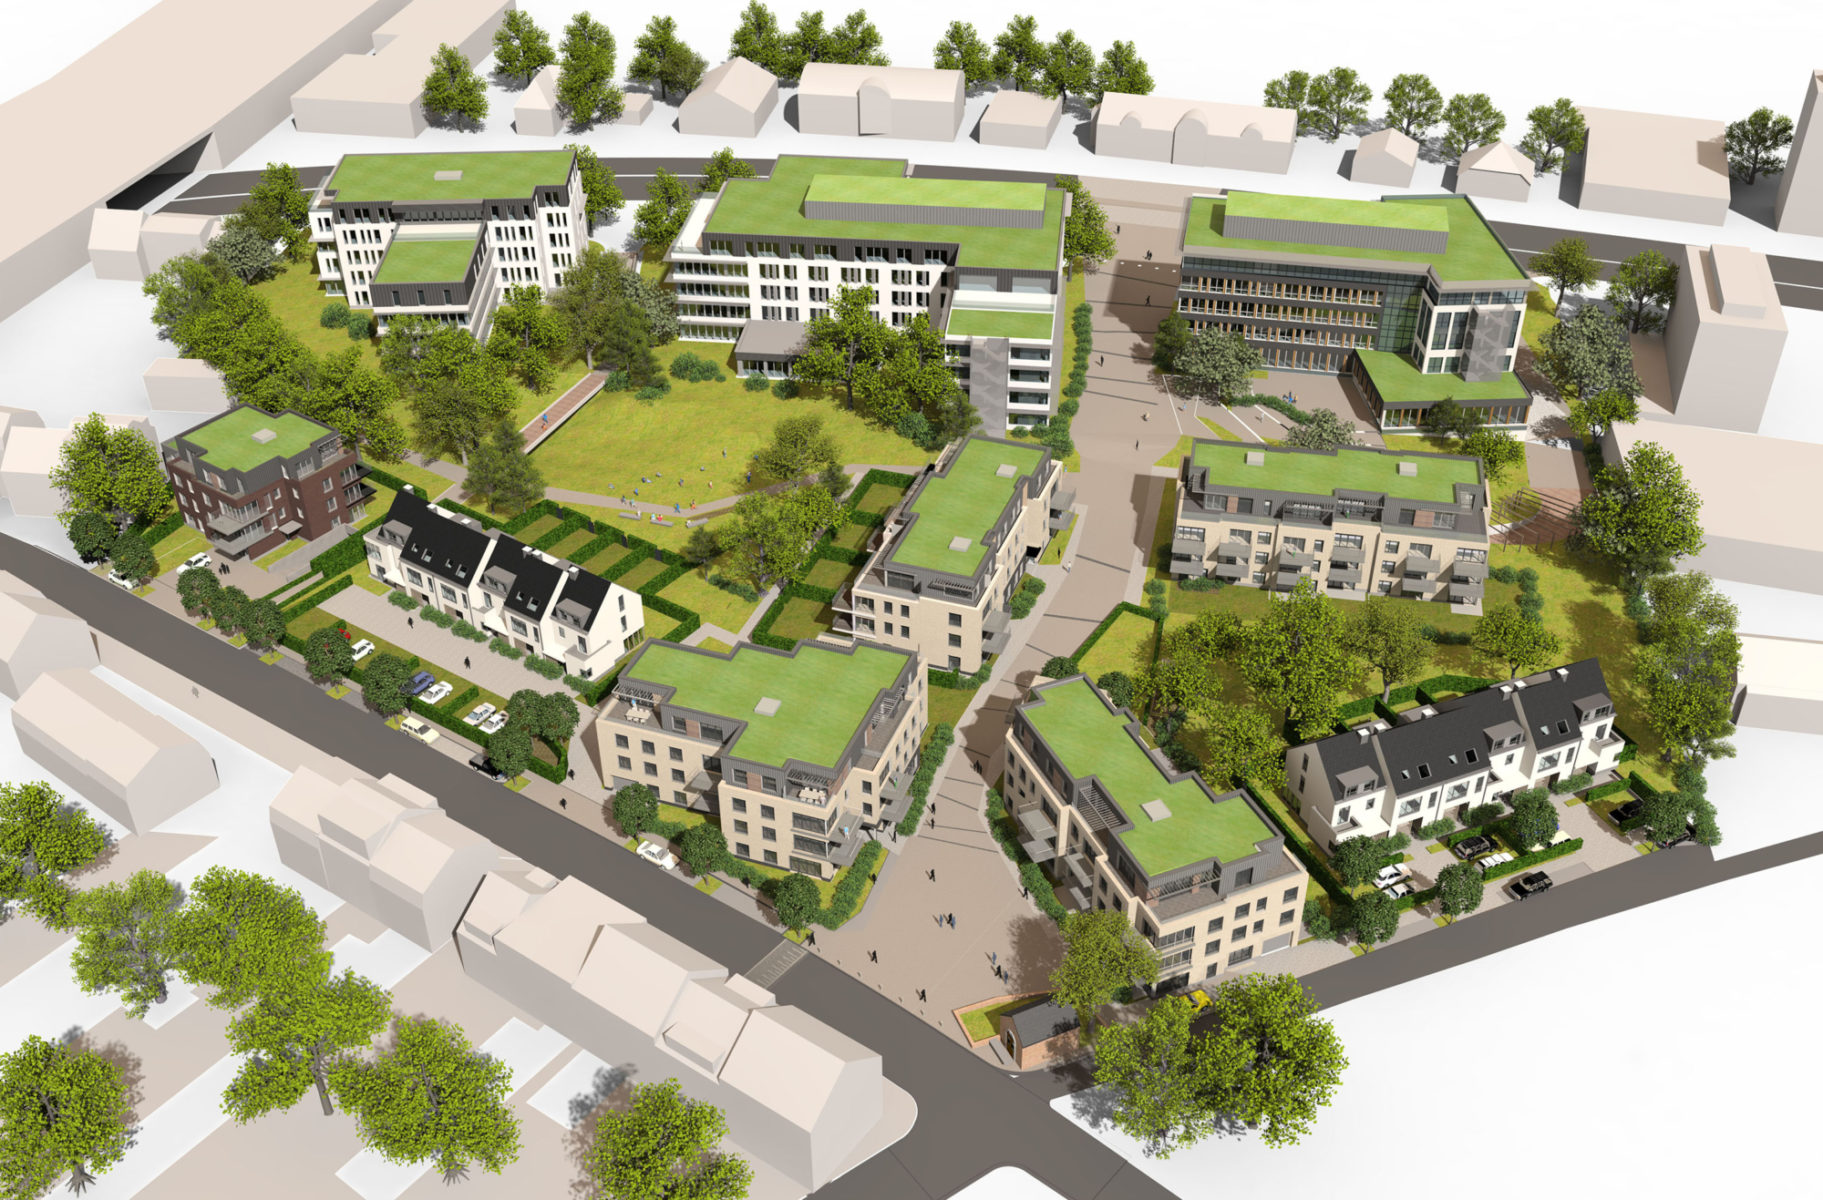 Aerial view of the projects Atradius, Aquilis and Enhaive © Wizywig